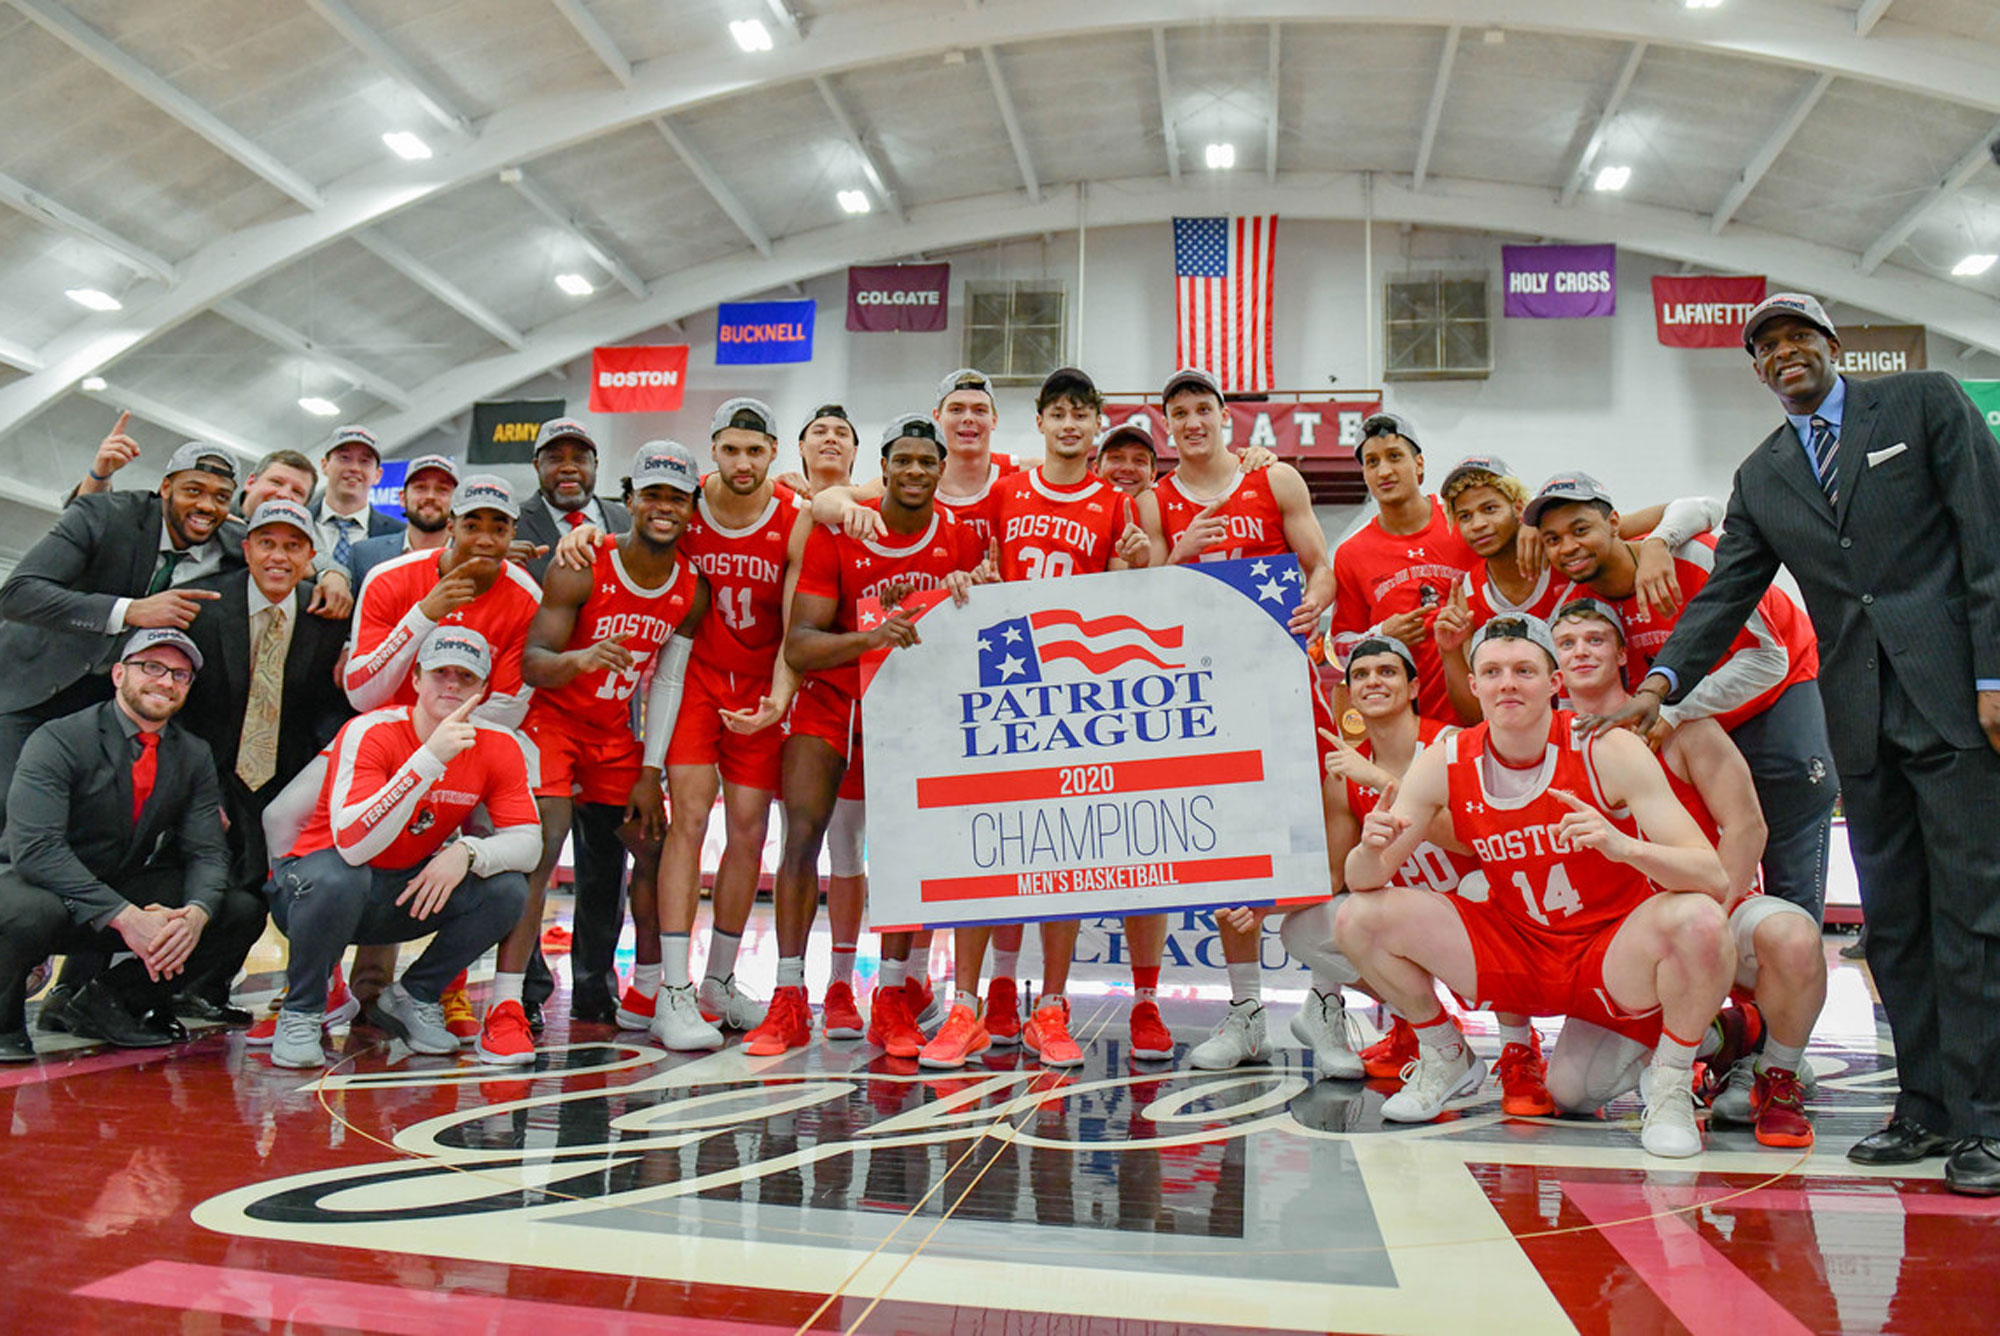 The BU men's basketball team celebrates their Patriot League championship